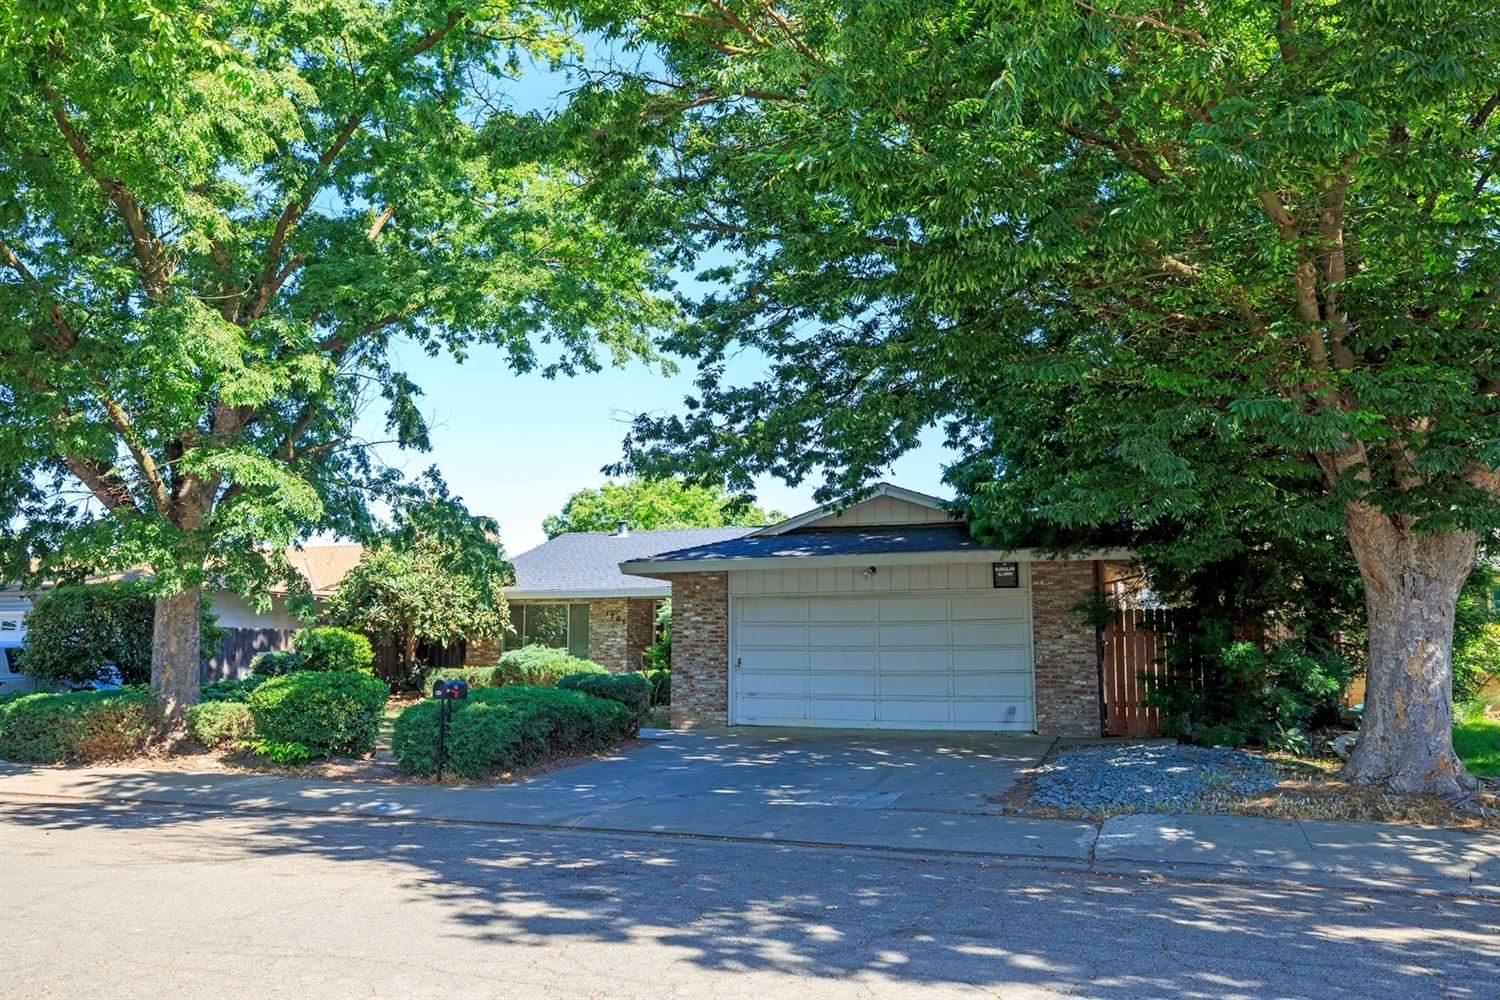 Photo of 1701 Fernandes Street, Modesto, CA 95355 (MLS # 221049610)